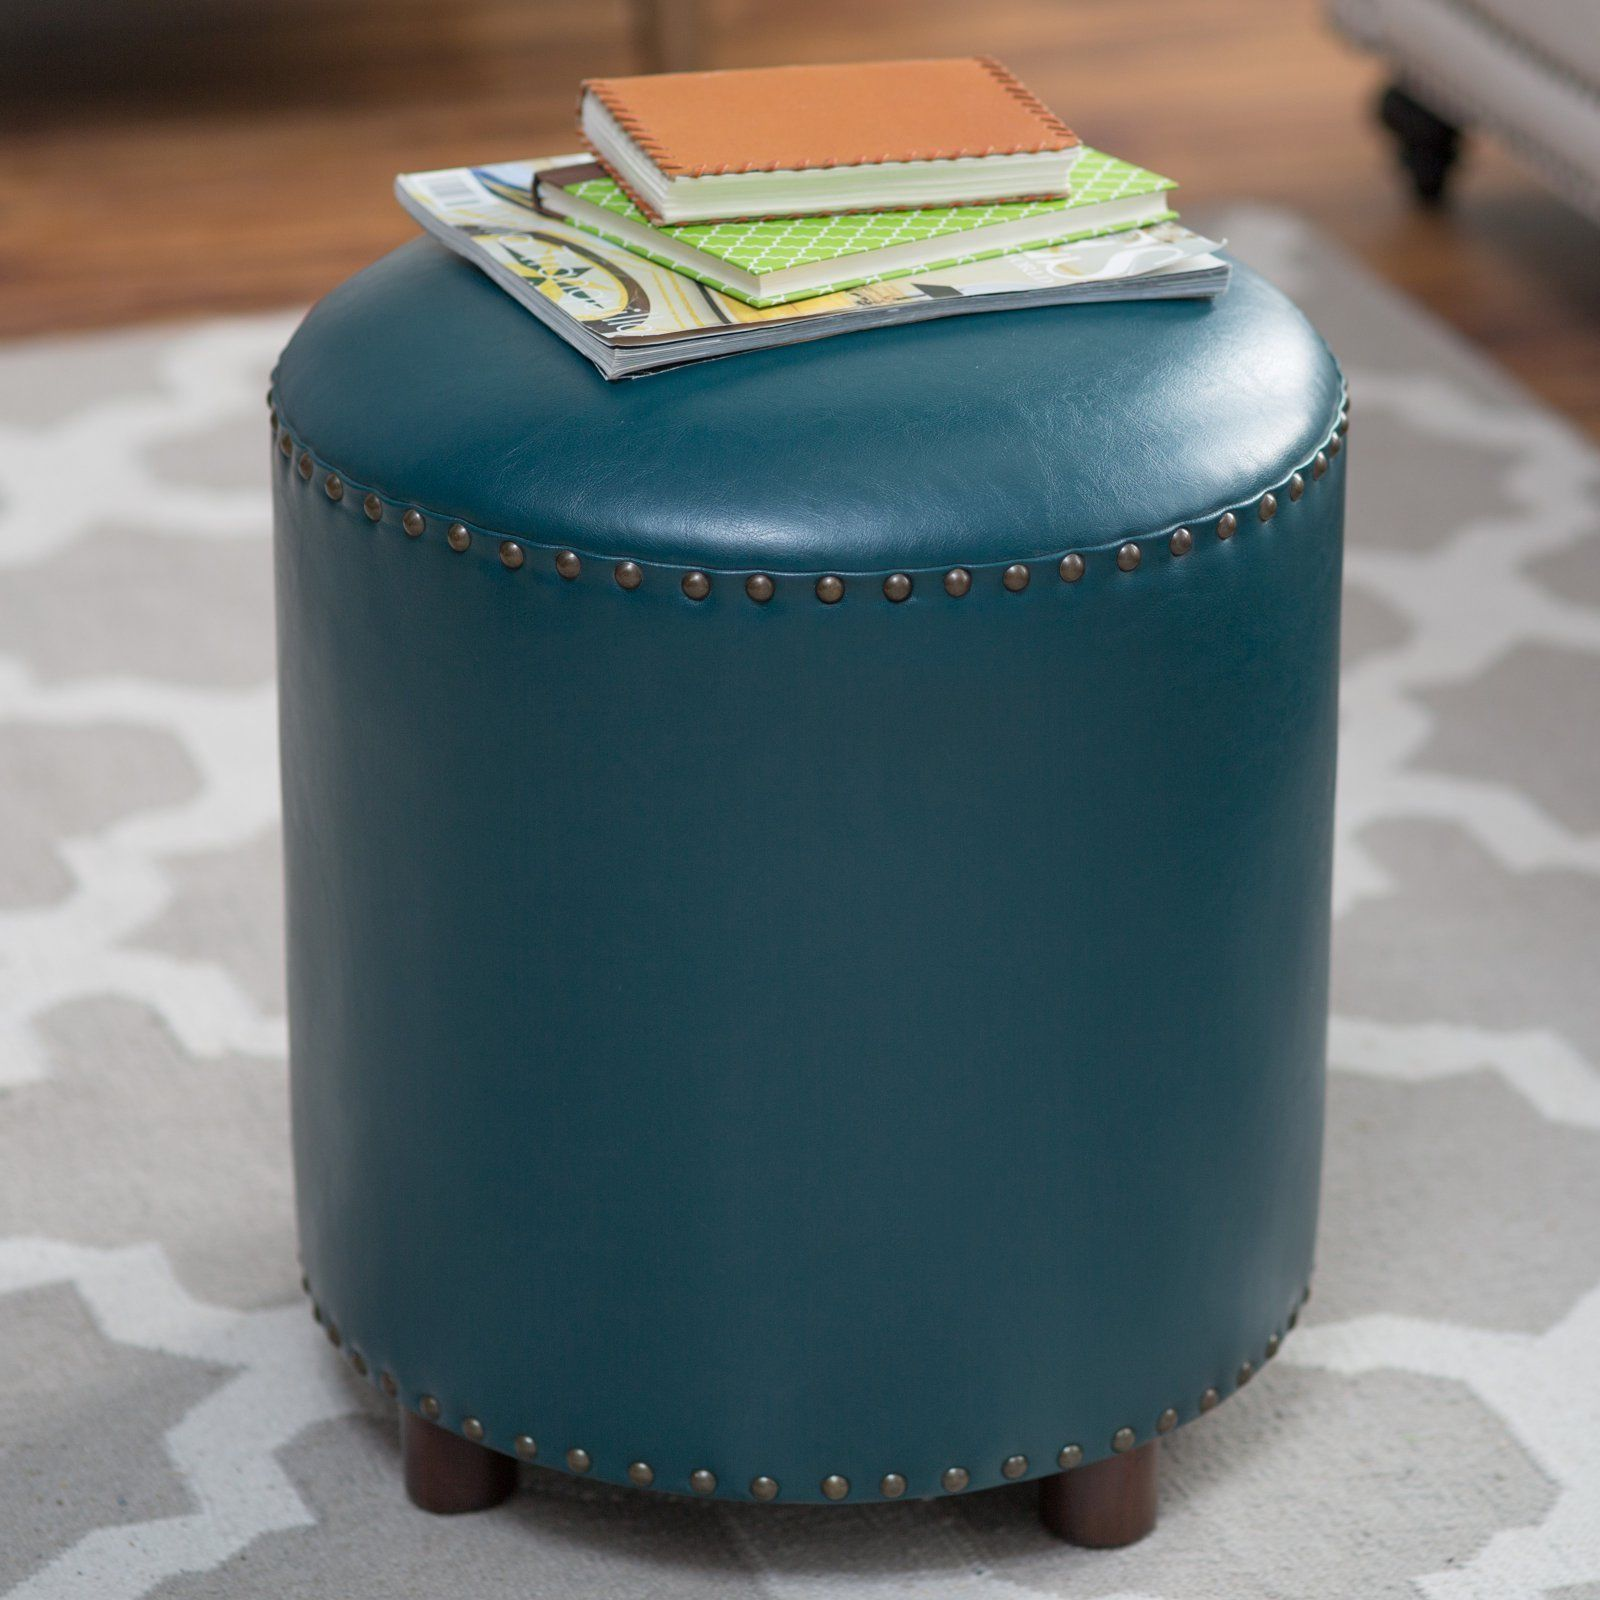 Leather Ottoman Round Hassock Footstool With Nailhead Studs Teal For Living Room Round Leather Ottoman Leather Ottoman Nailhead